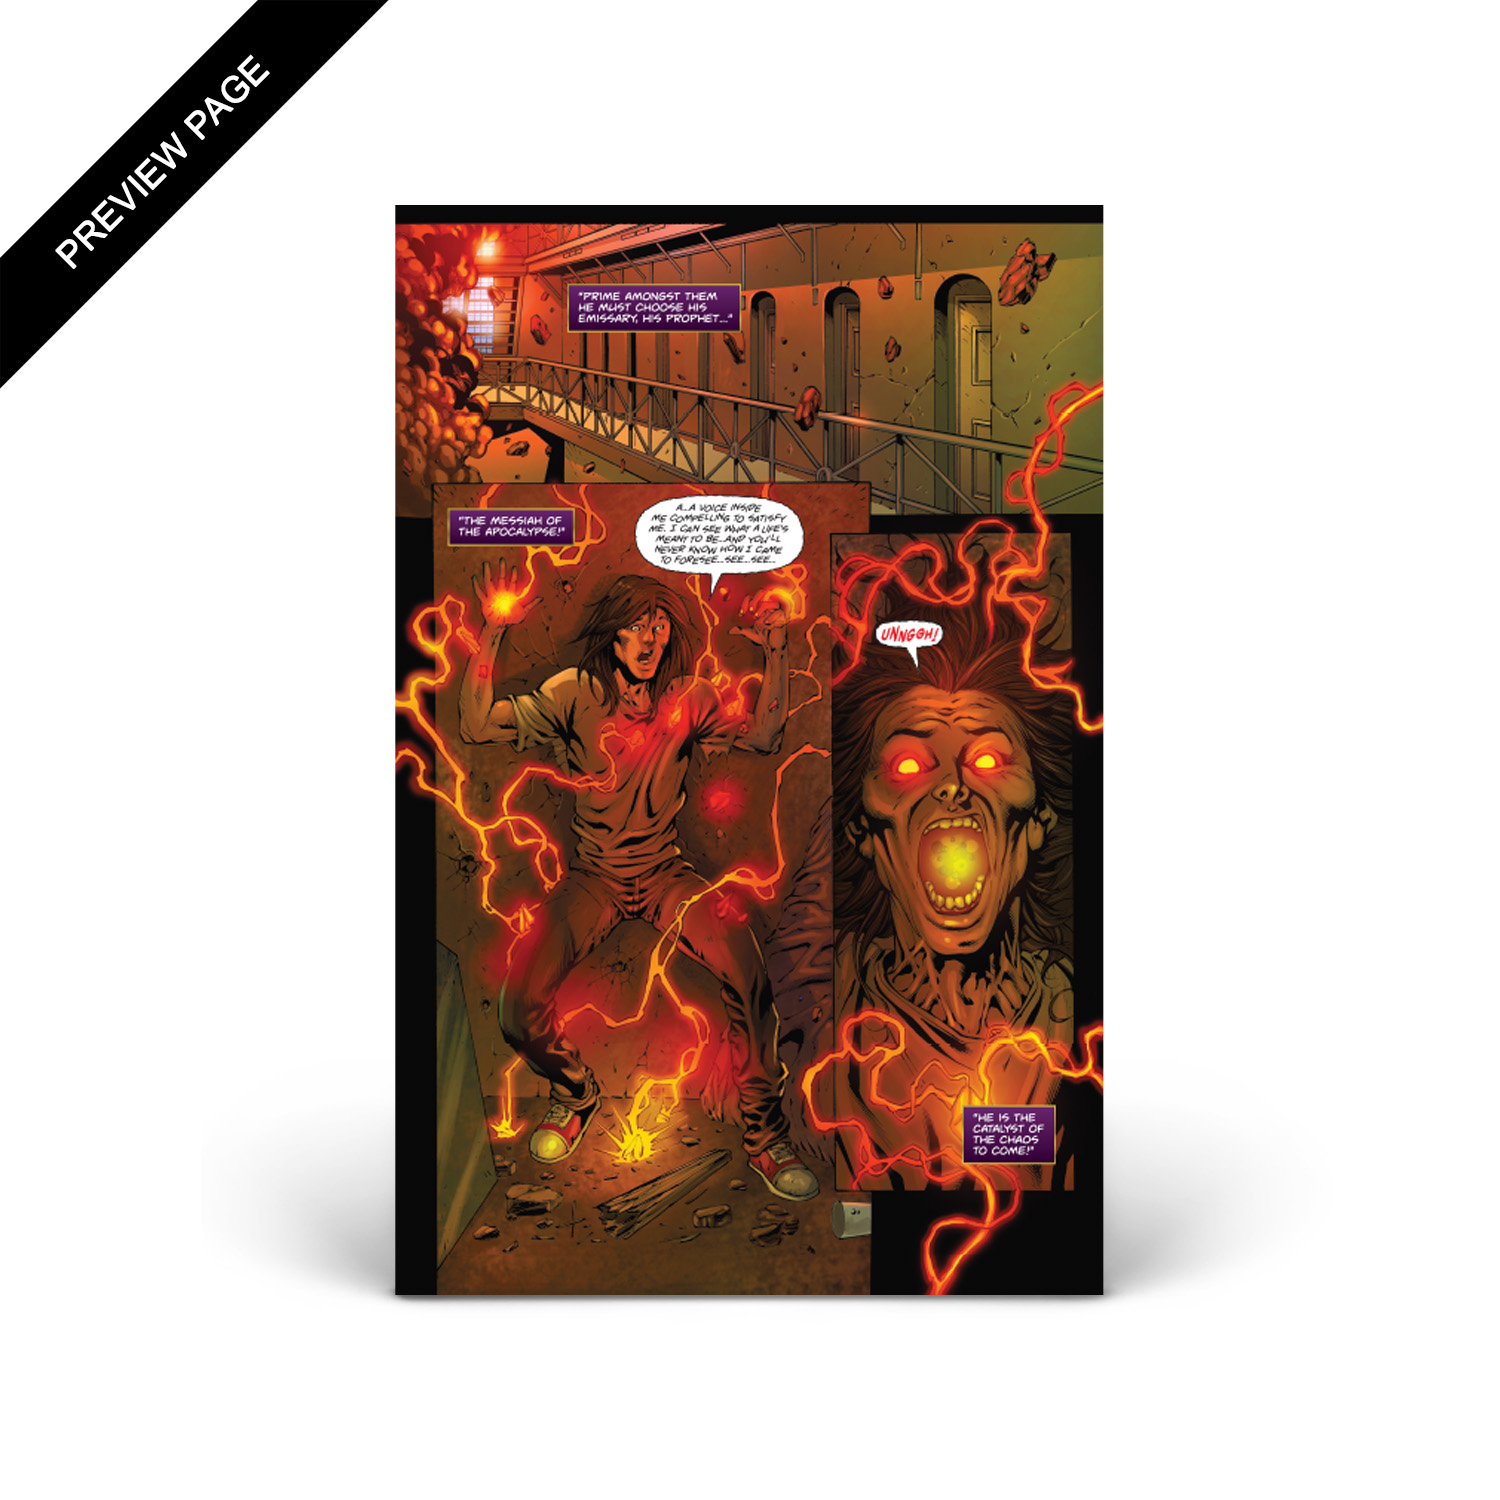 Iron Maiden - Legacy of the Beast - Volume 2 - Issue #1 - Cover A